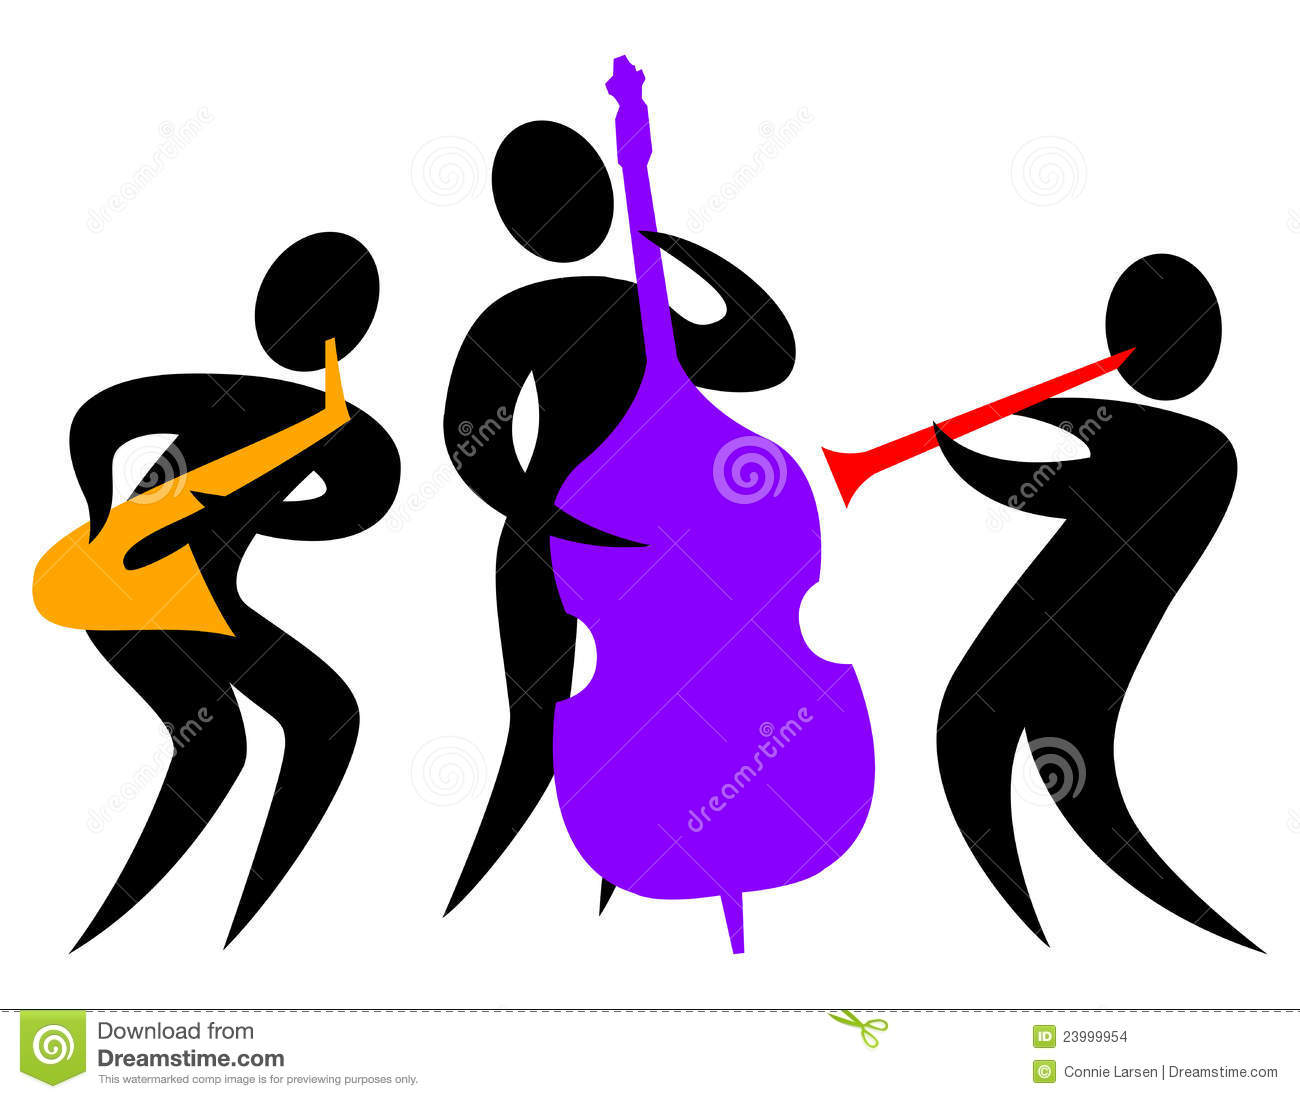 Jazz music band flat group cartoon musician people